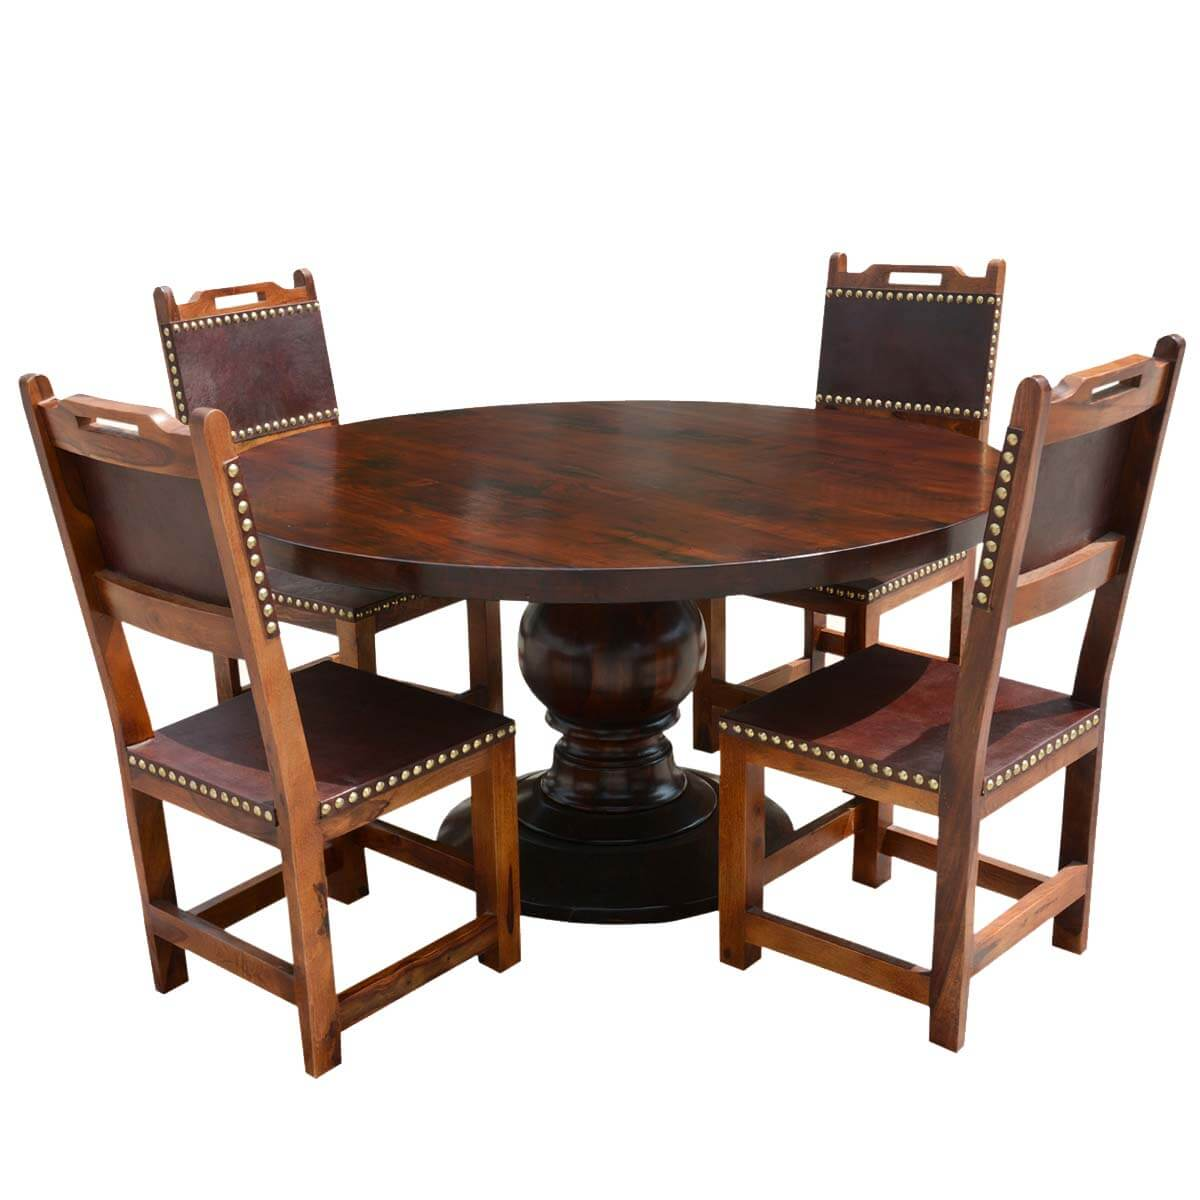 Hover Round Chairs Santa Ana Round Kitchen Dining Table Set With Leather Back Chairs